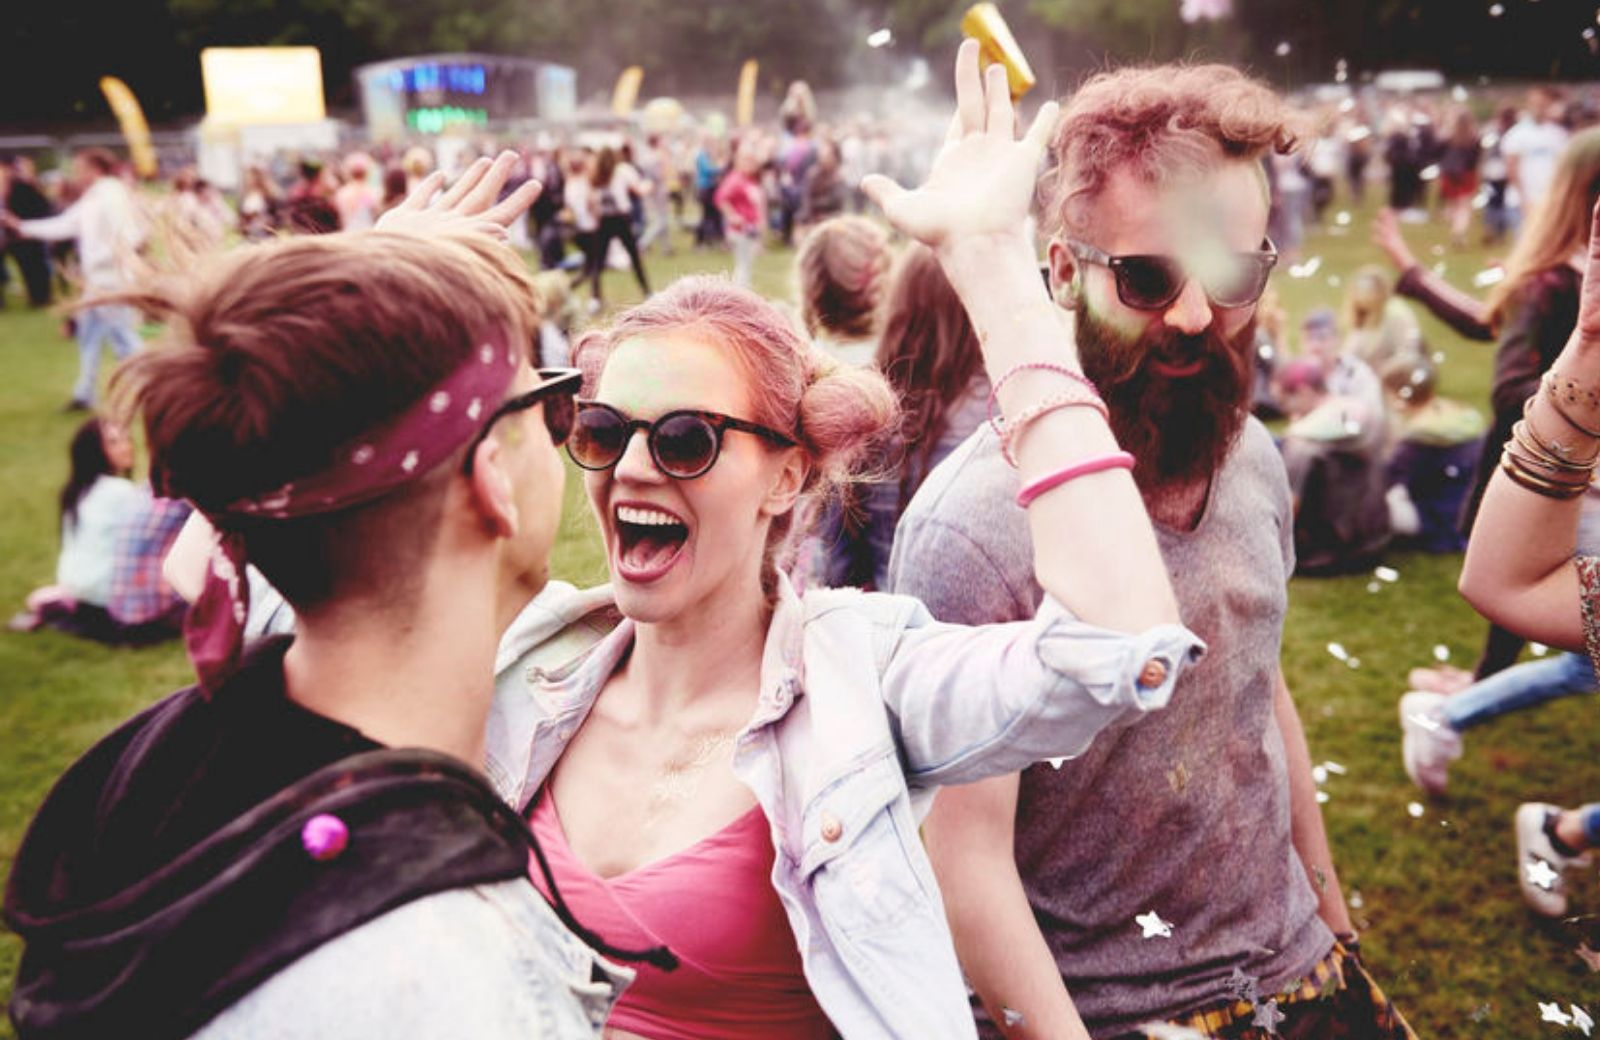 friends celebrating at a festival